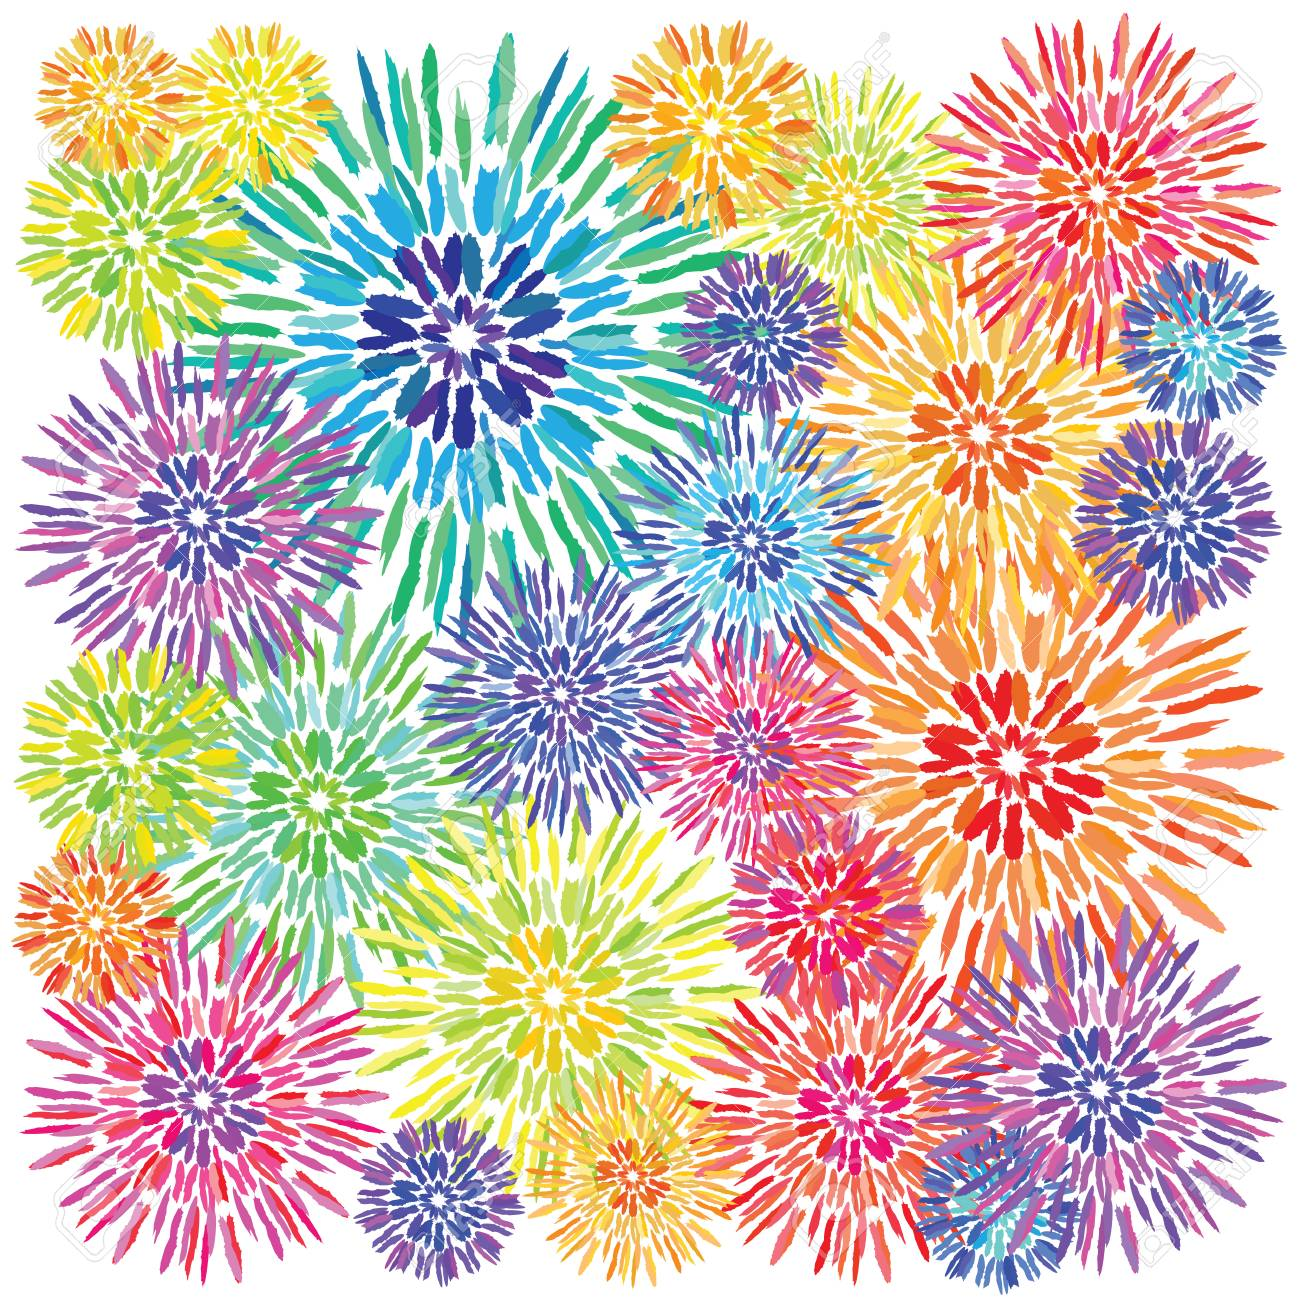 cc6480e61 Vector - vector illustration / tie dye colorful background / rainbow colored  concentric circles made with brush strokes